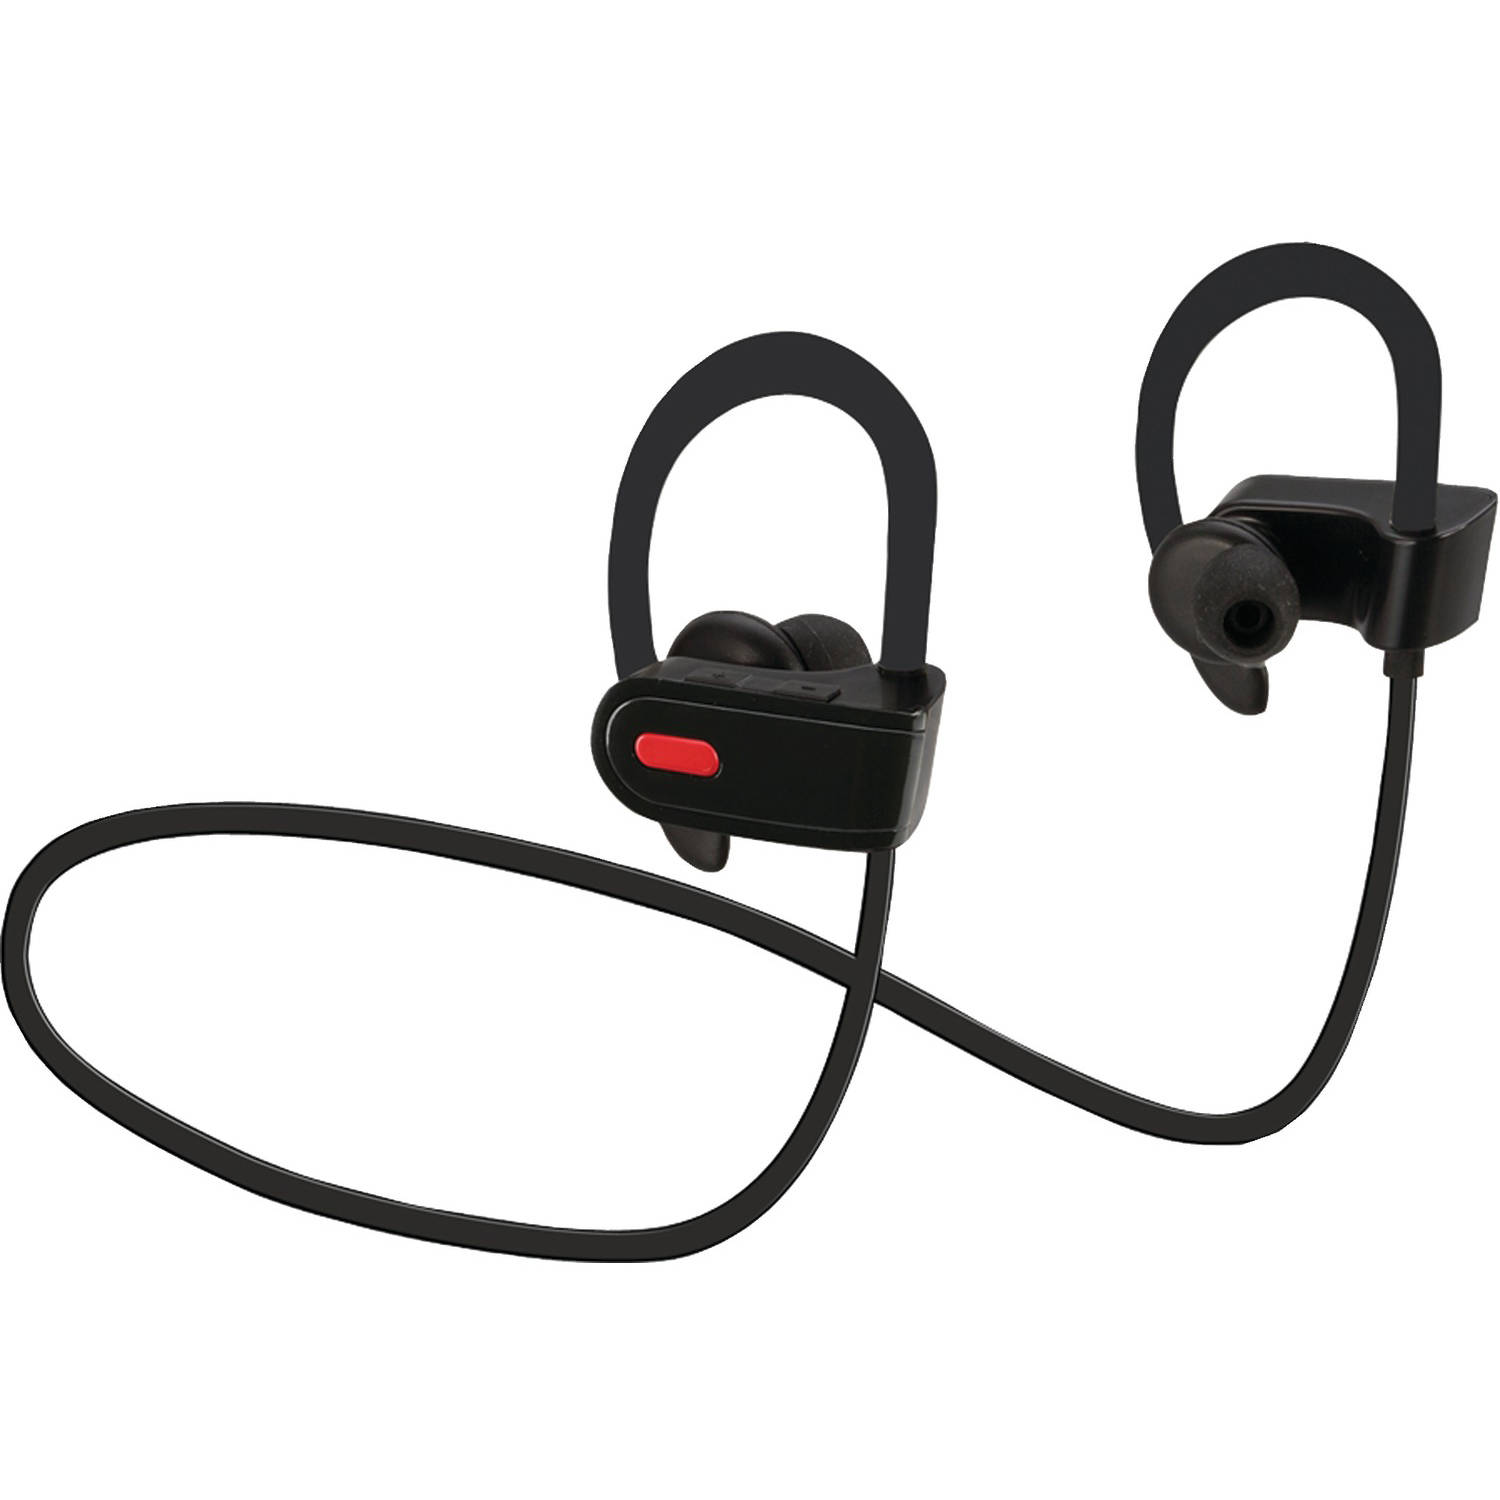 iLive IAEB26B Bluetooth In-Ear Earbuds with Microphone